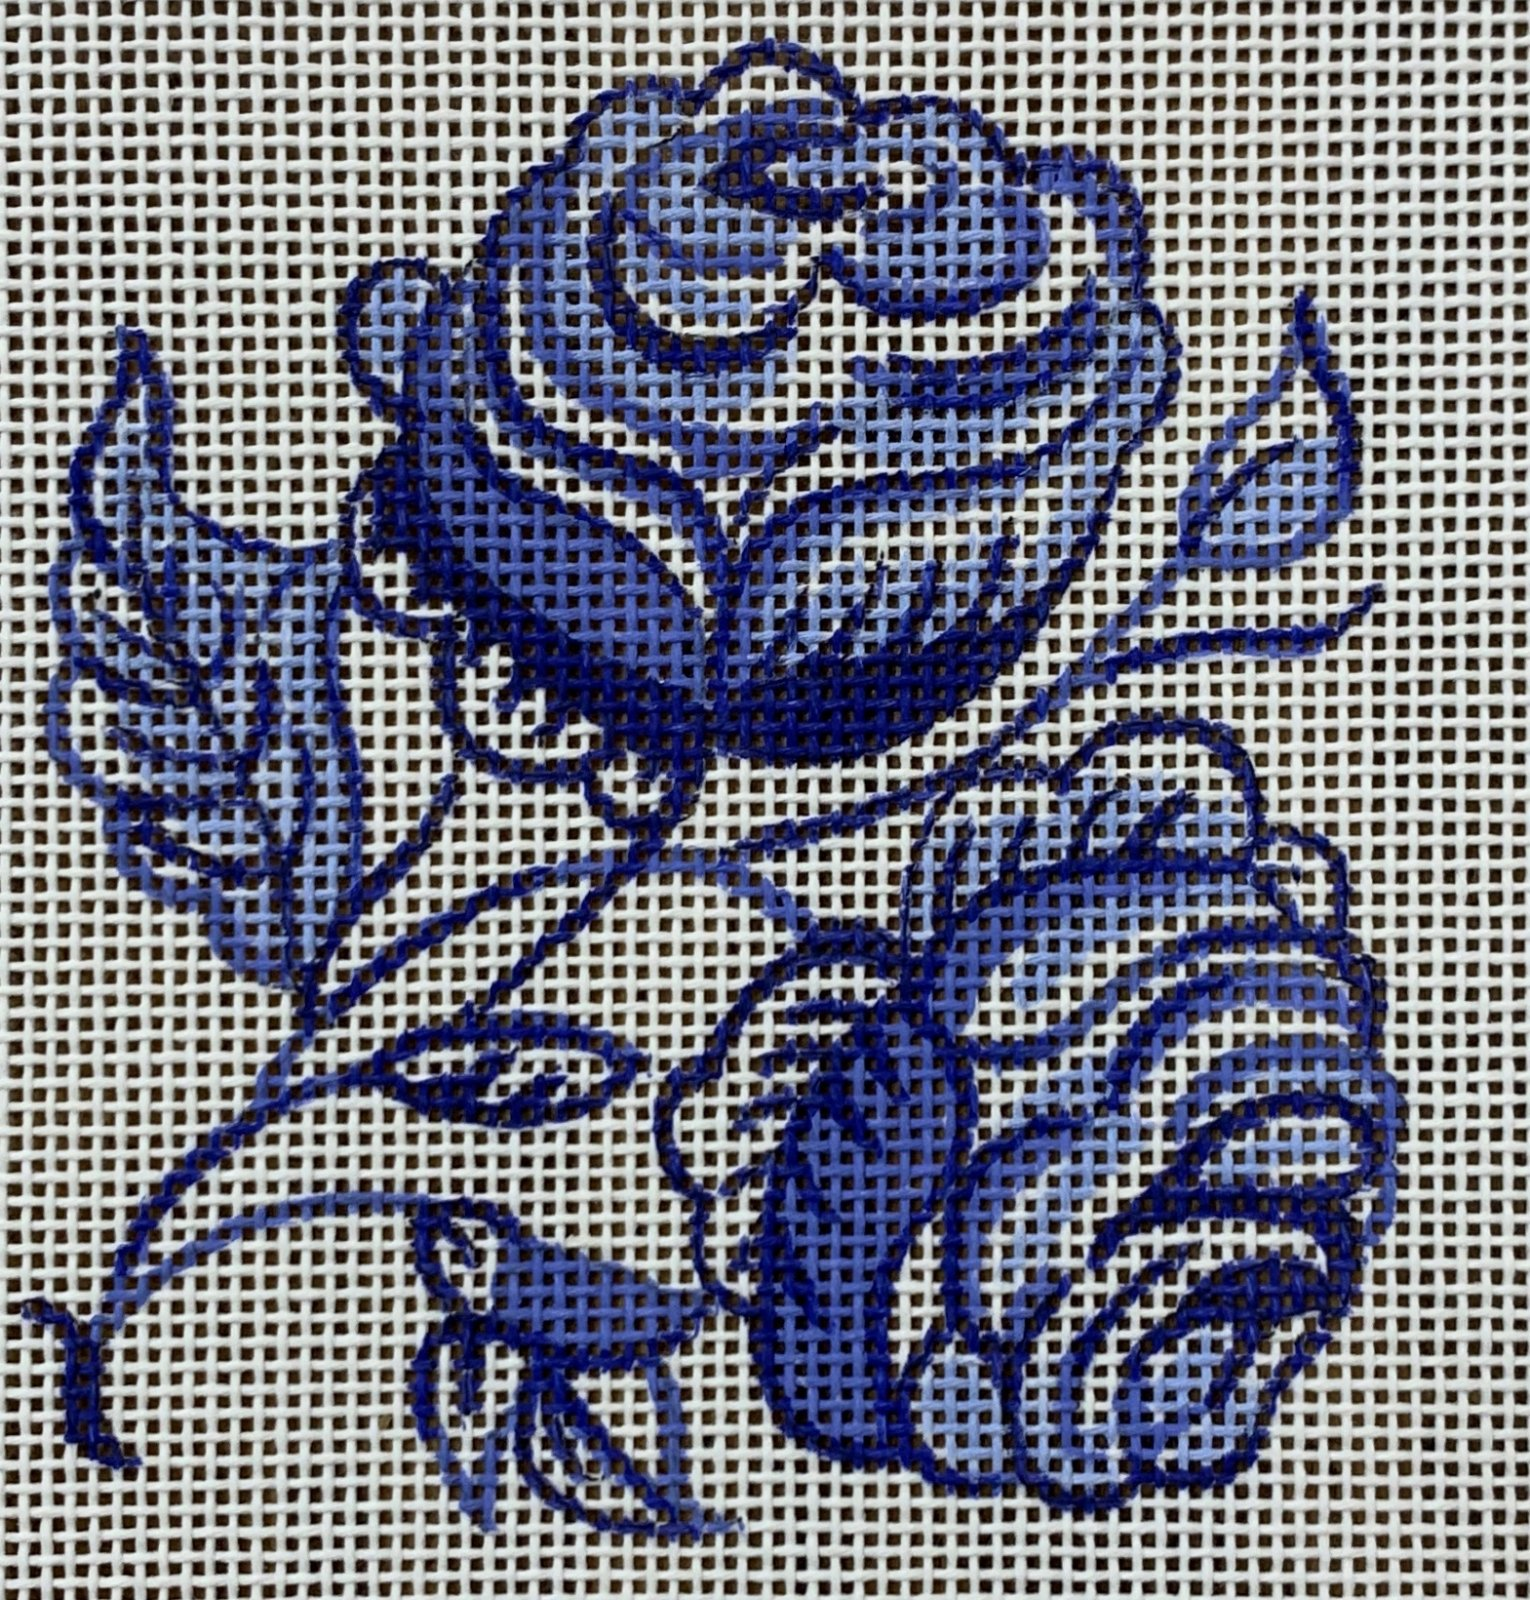 Delft Tiles Collection - Roses